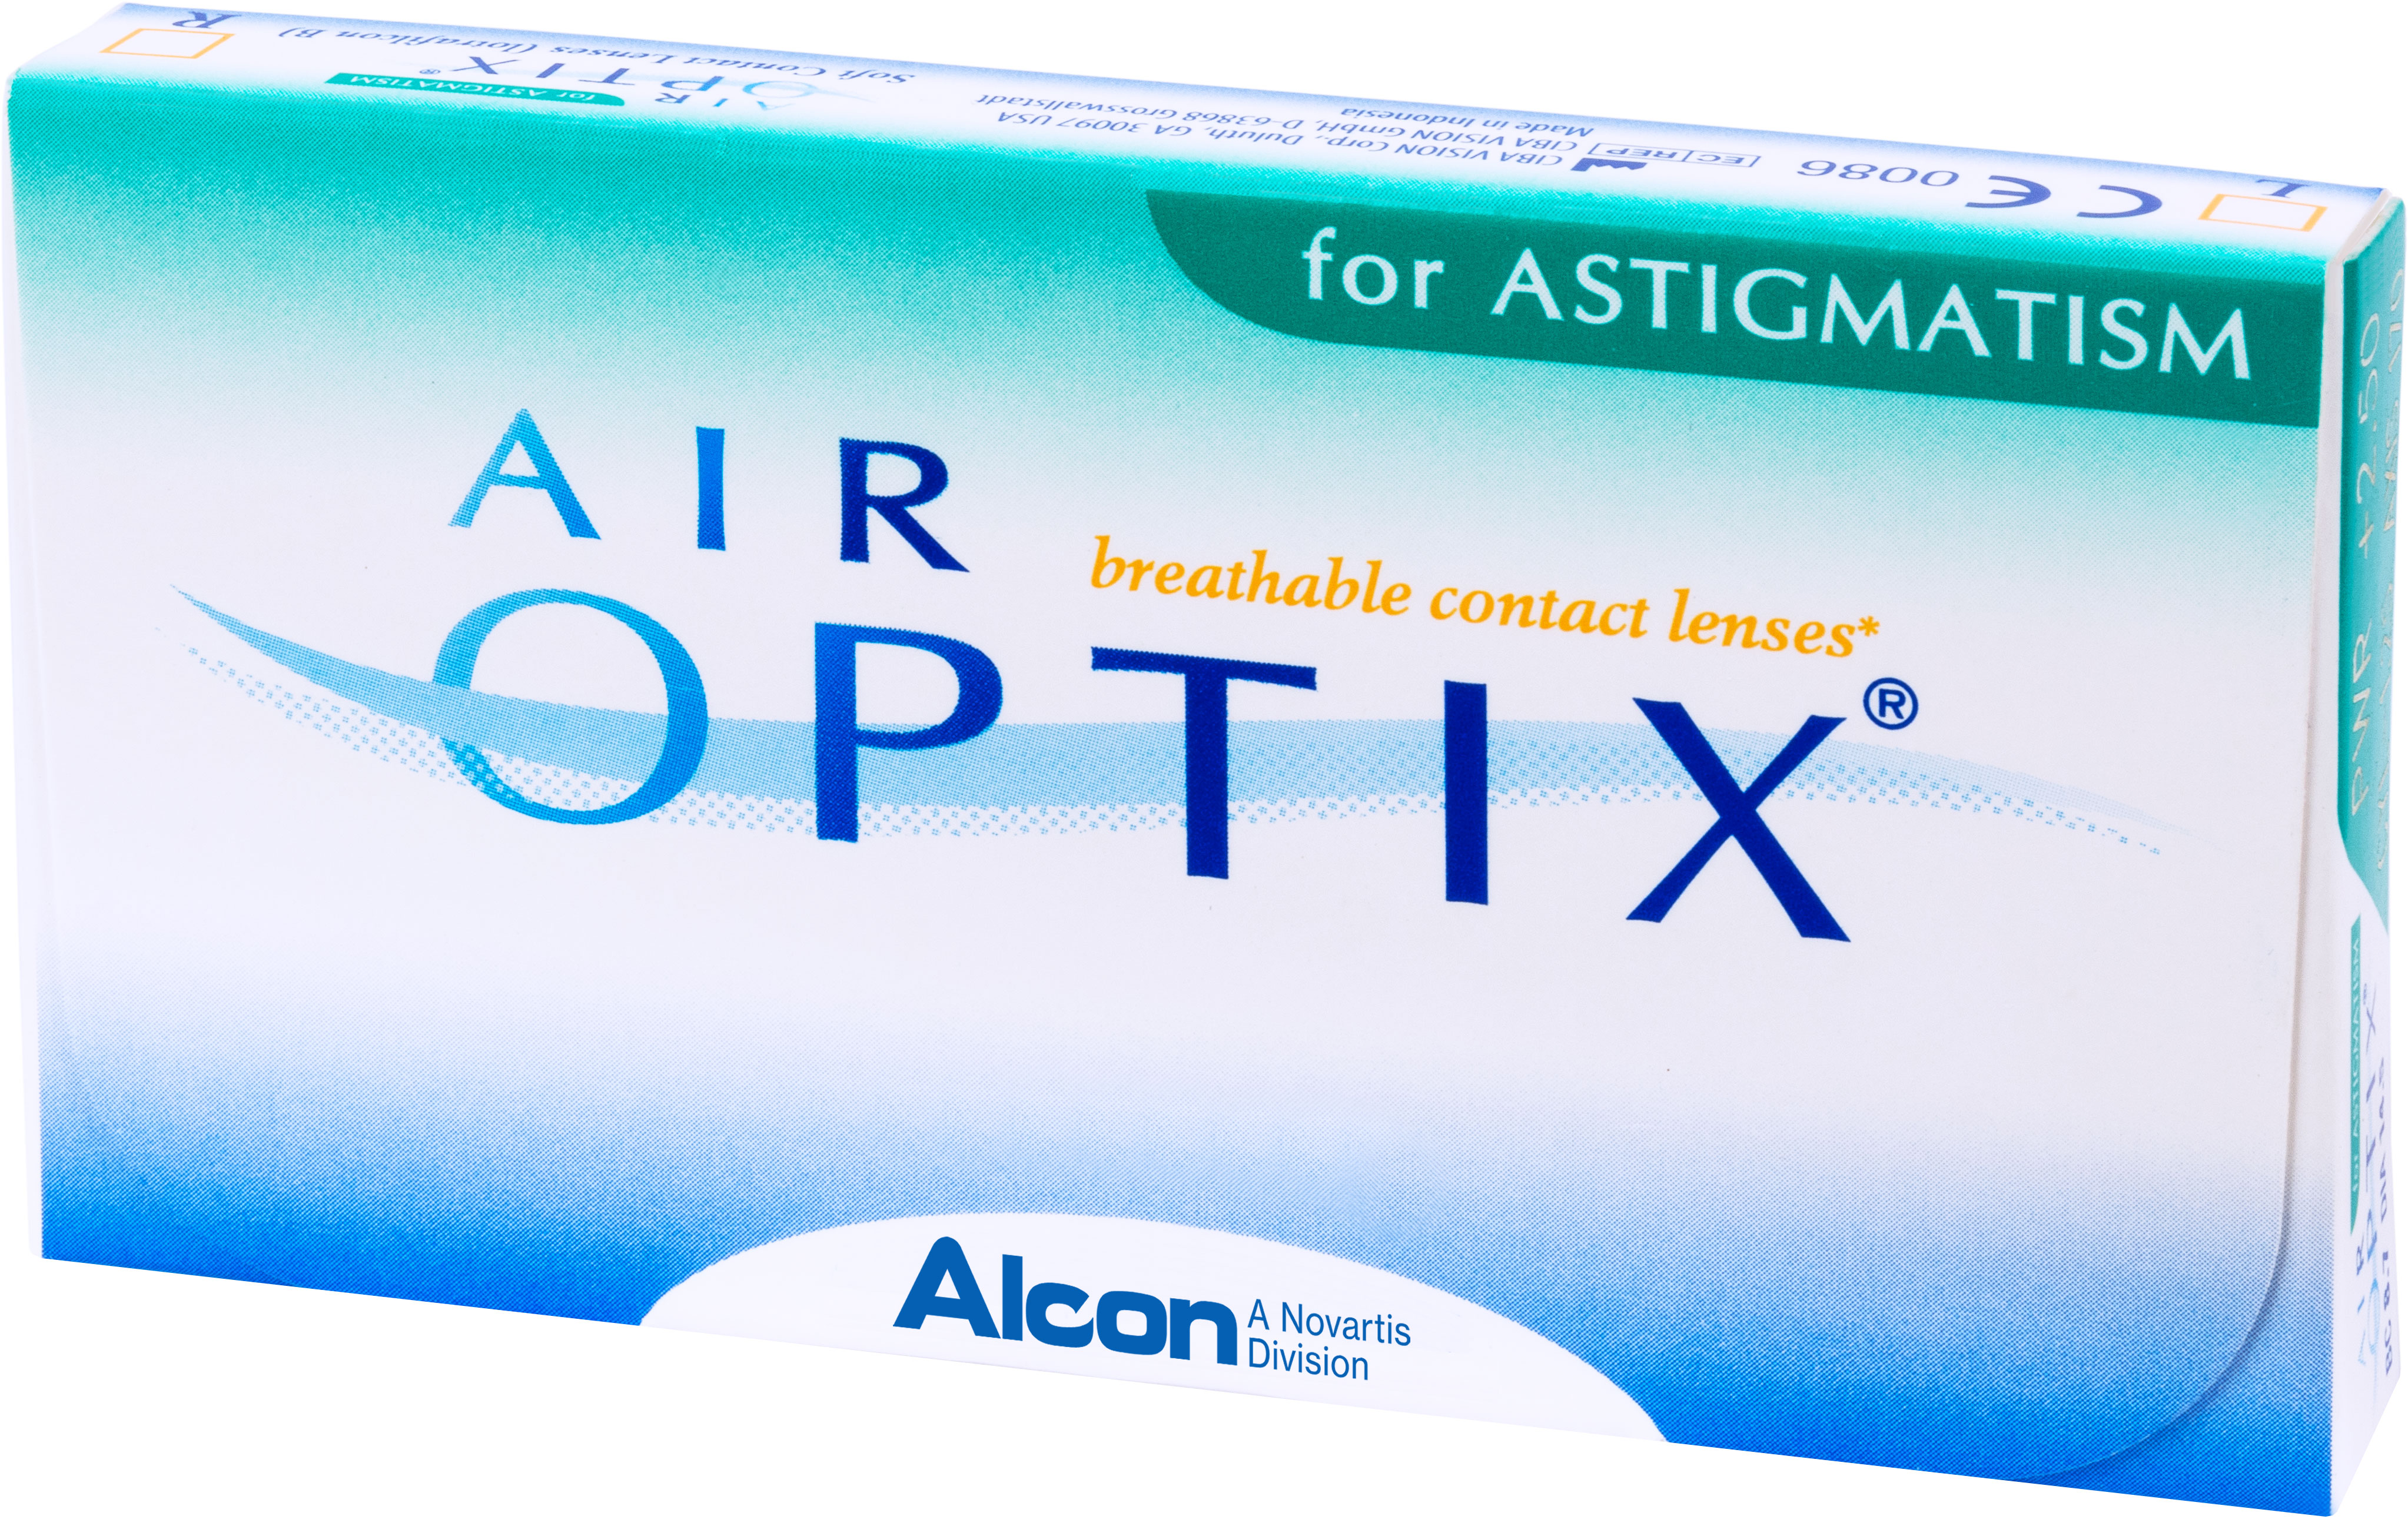 Аlcon контактные линзы Air Optix for Astigmatism 3pk /BC 8.7/DIA14.5/PWR +4.50/CYL -0.75/AXIS 90100024136with Hydraclear